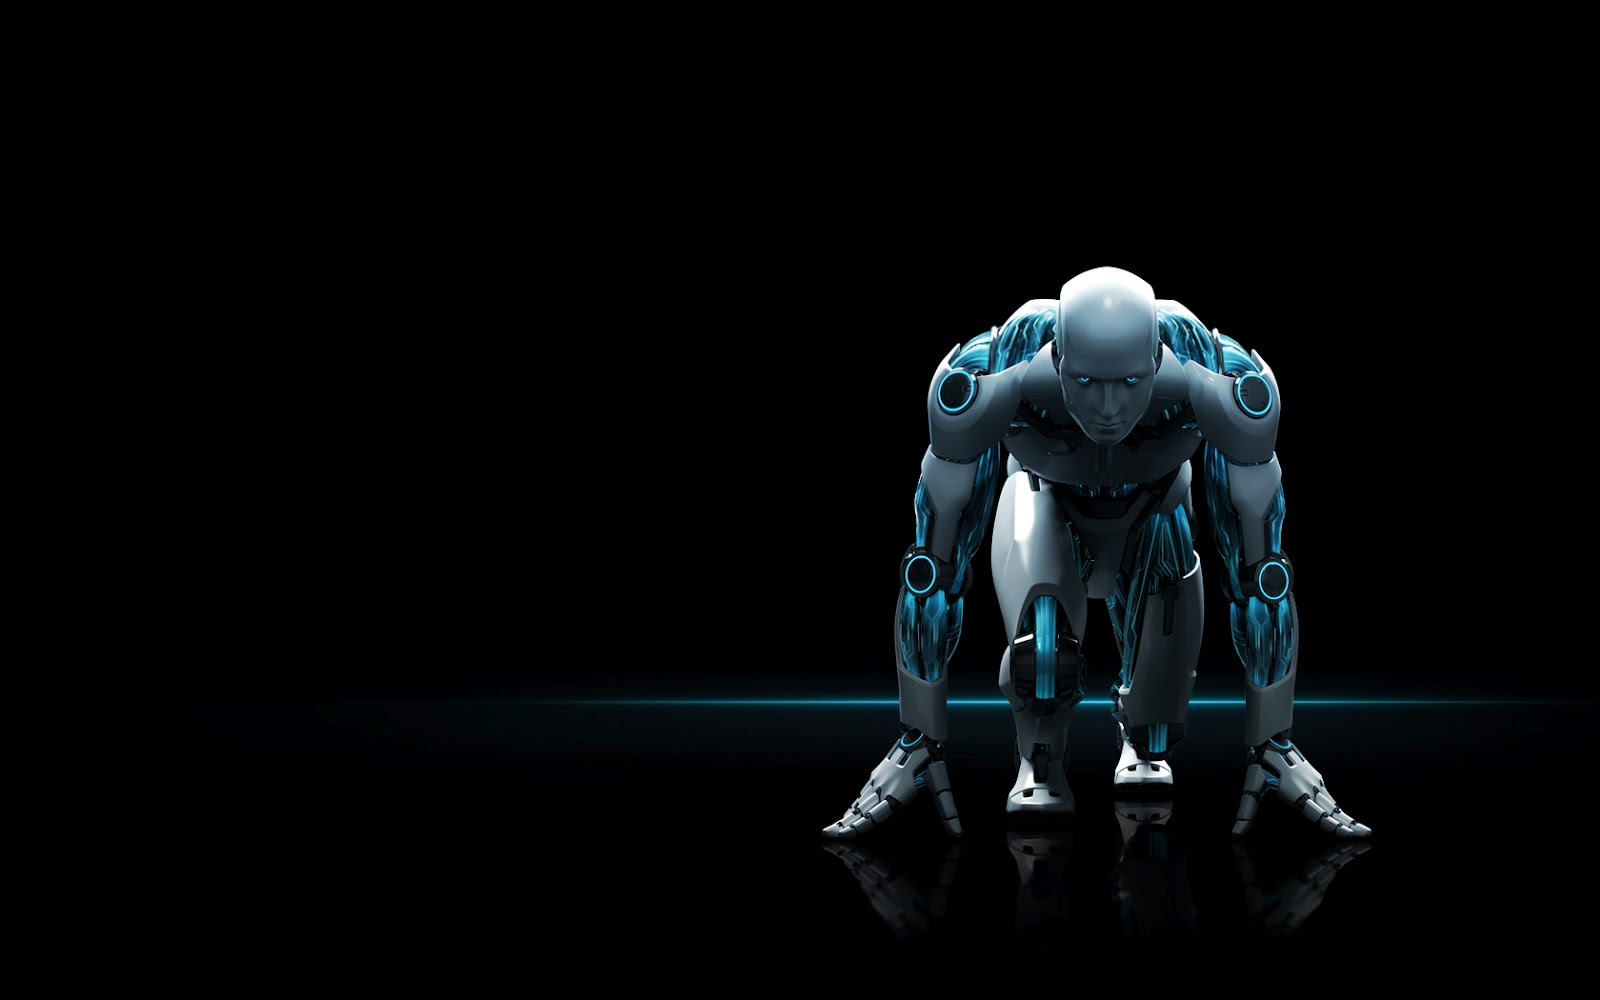 http://4.bp.blogspot.com/-zMP0DYNJ6uc/UD4BR63U1II/AAAAAAAAEEs/vGc9DLh2GB4/s1600/3D_Eset_Nod32_Robot_Ready_To_Run_HD_Wallpaper.jpg